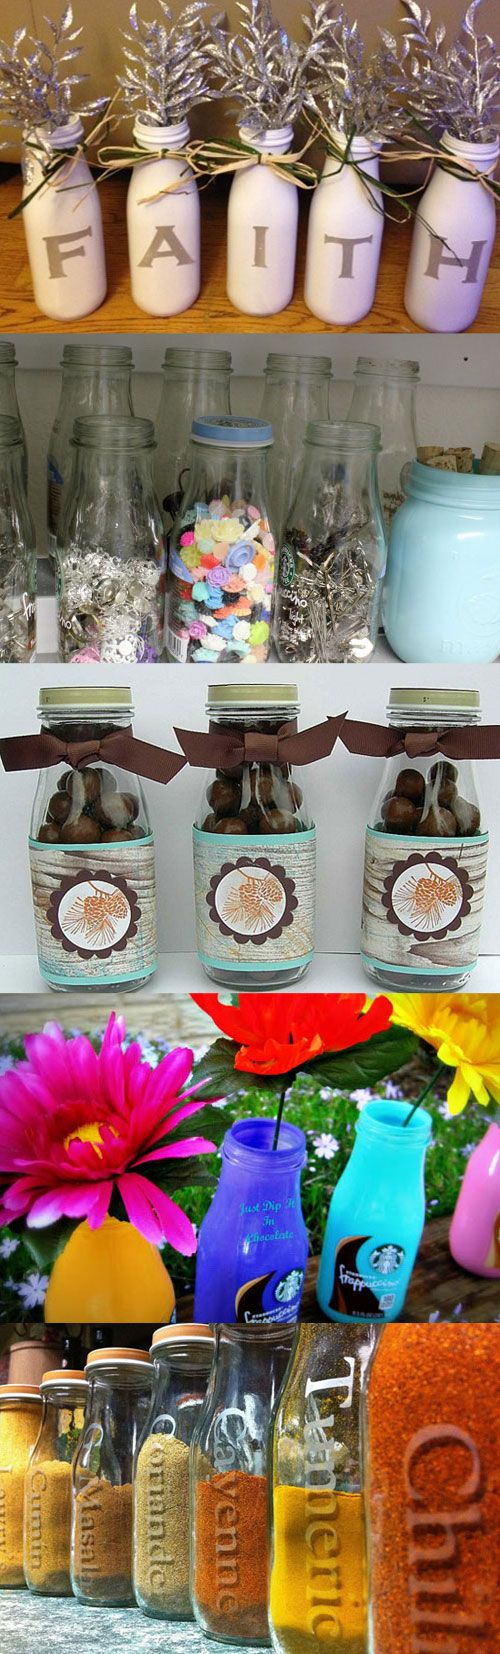 Ideas for reusing frappuccino bottles - Mommy Scene